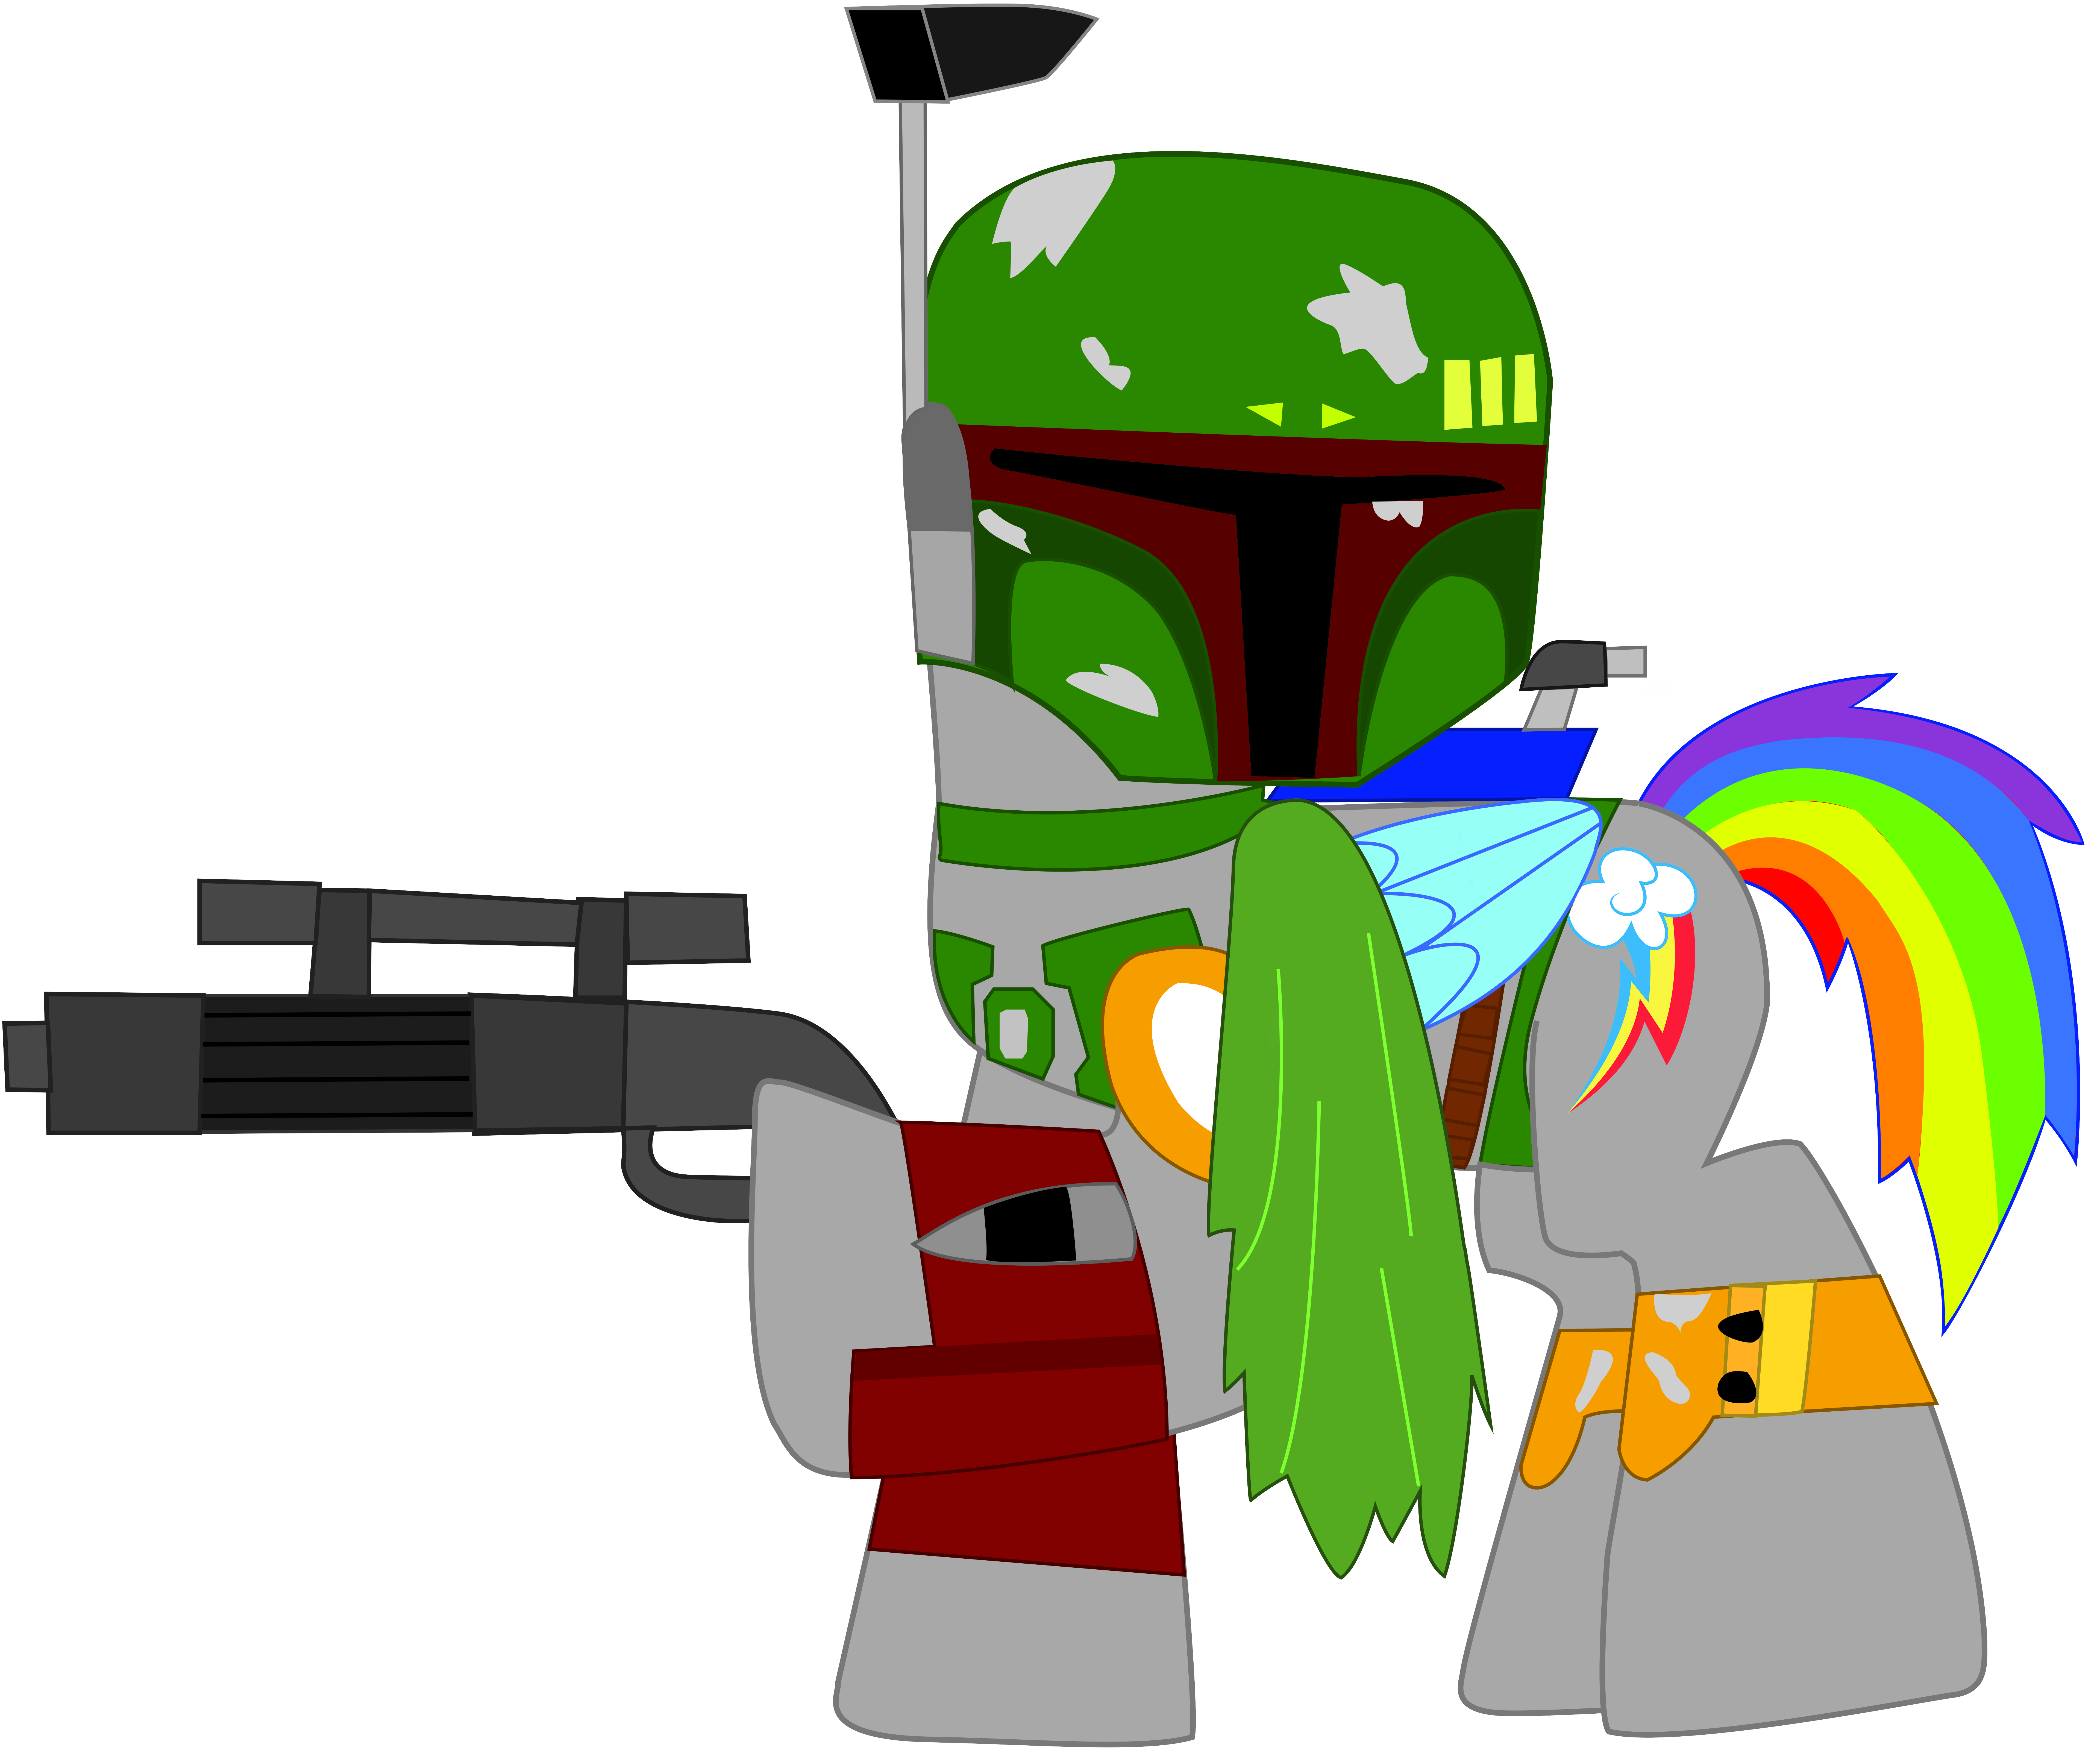 Lego star wars clipart clip art library Rainbow Dash as Boba Fett in Star wars by EJLightning007arts on ... clip art library